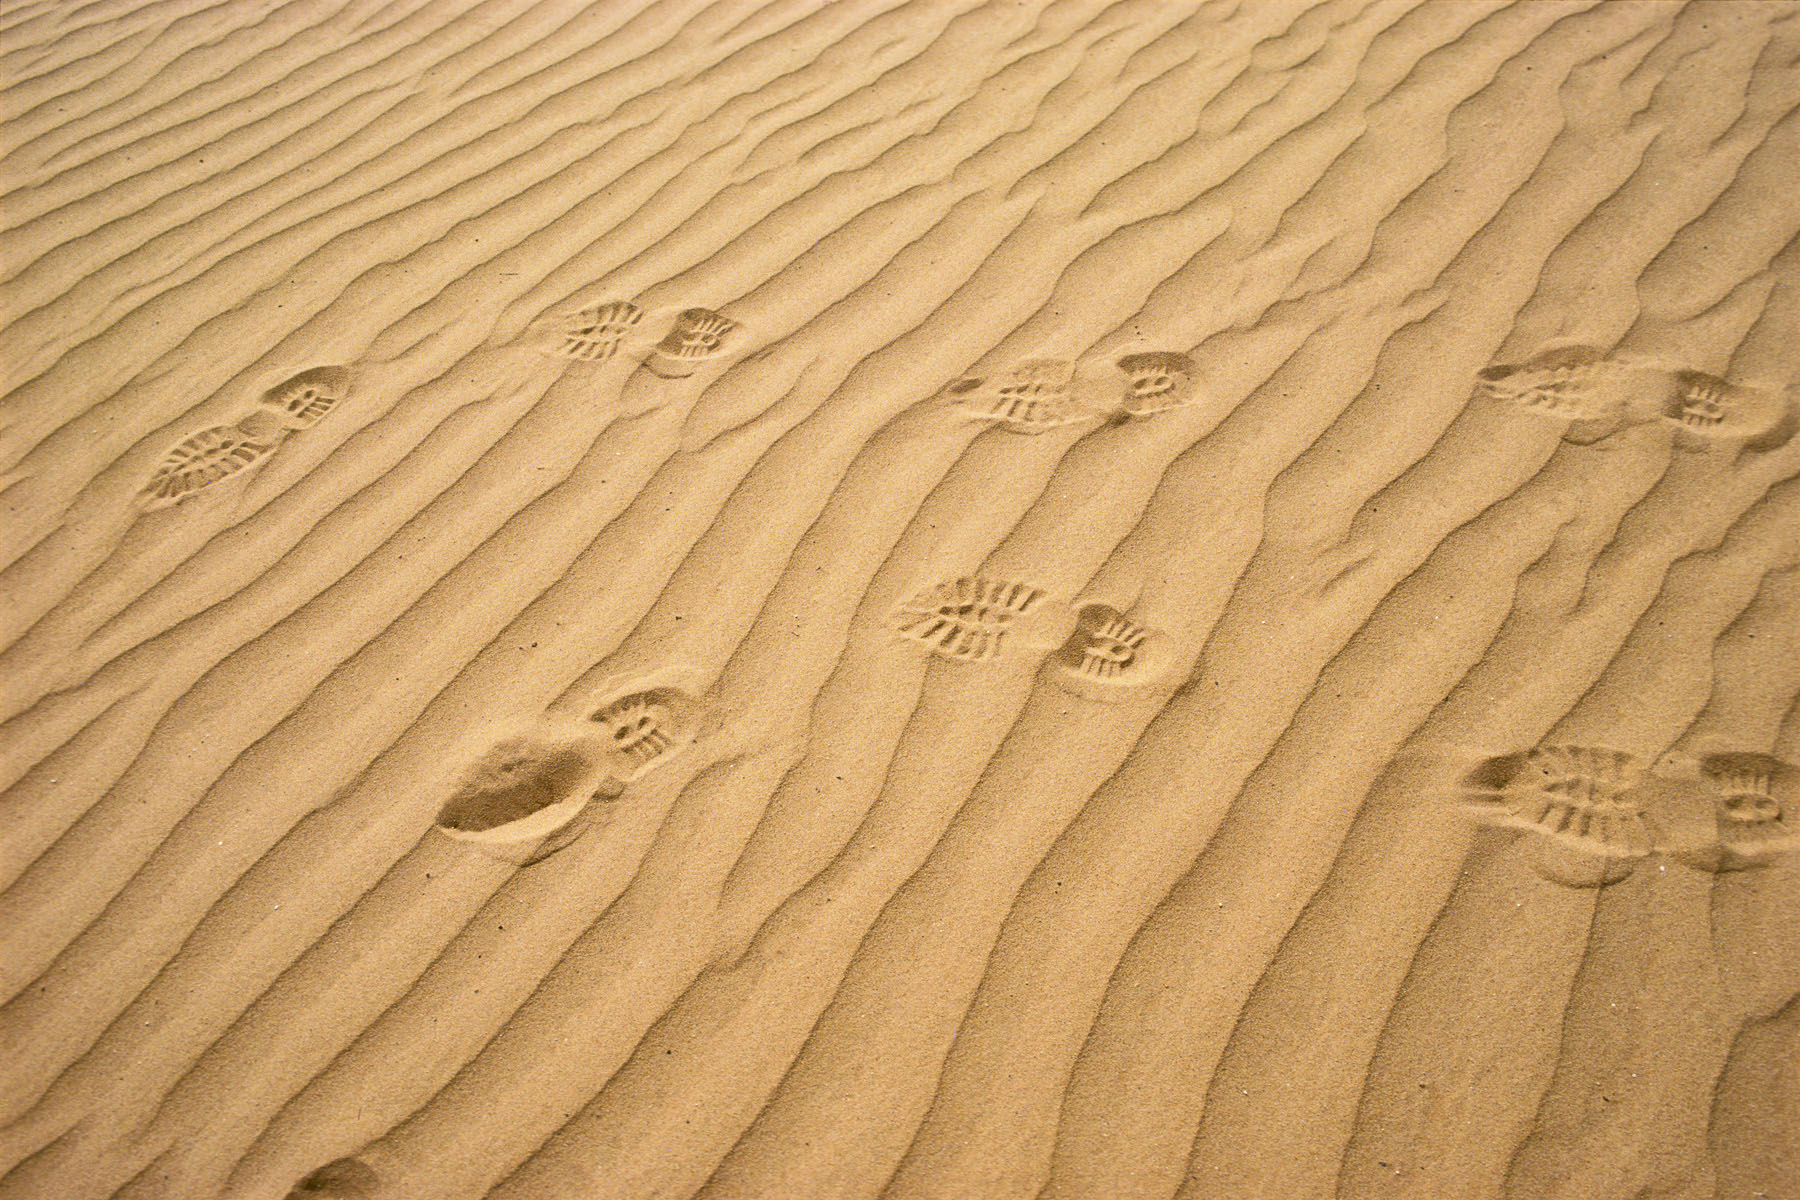 French Foreign Legion soldiers' footprints in January 1991